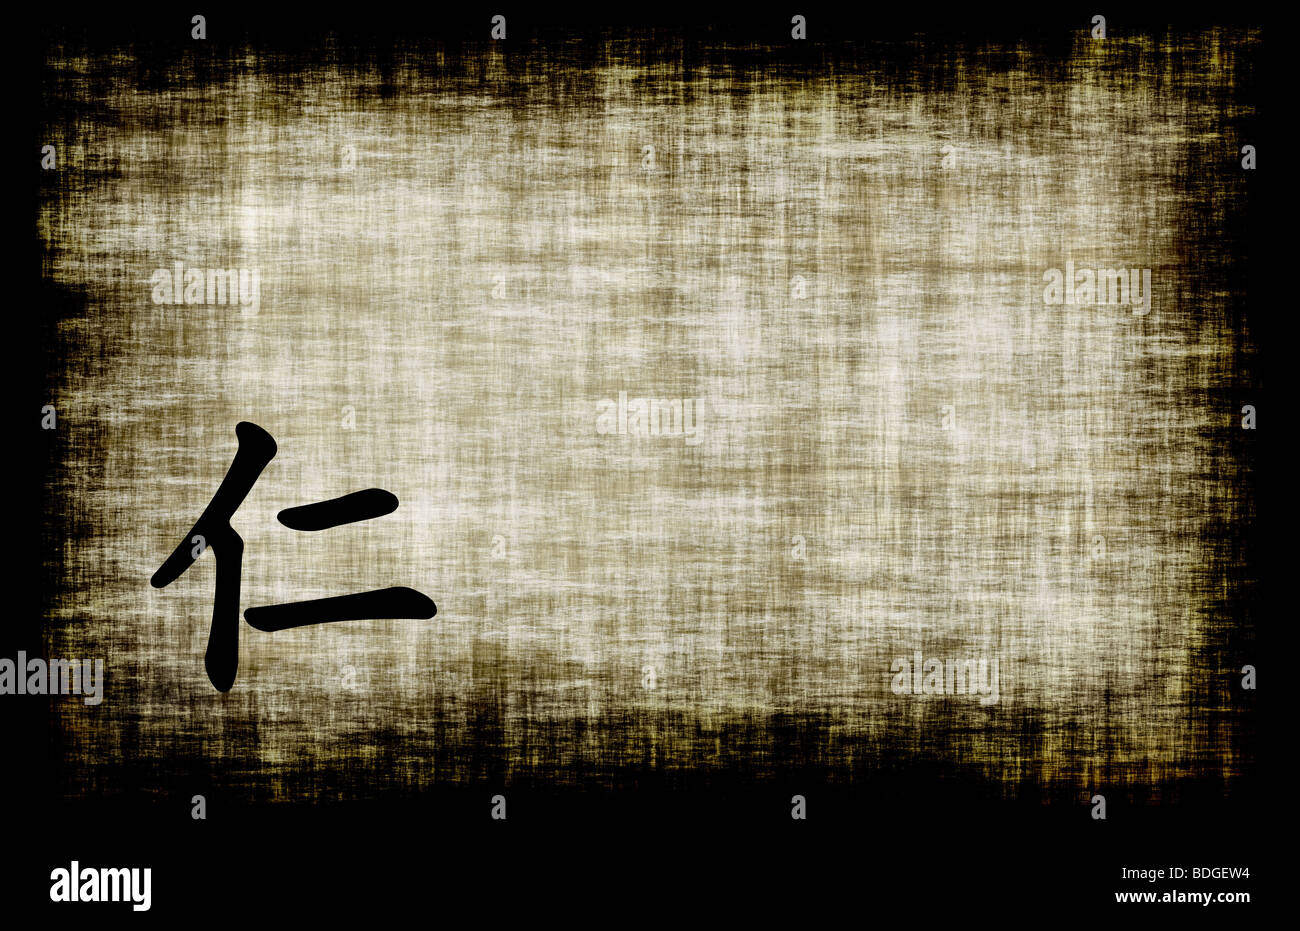 Chinese Letters For Kindness On Gray Parchment Stock Photo 25563808